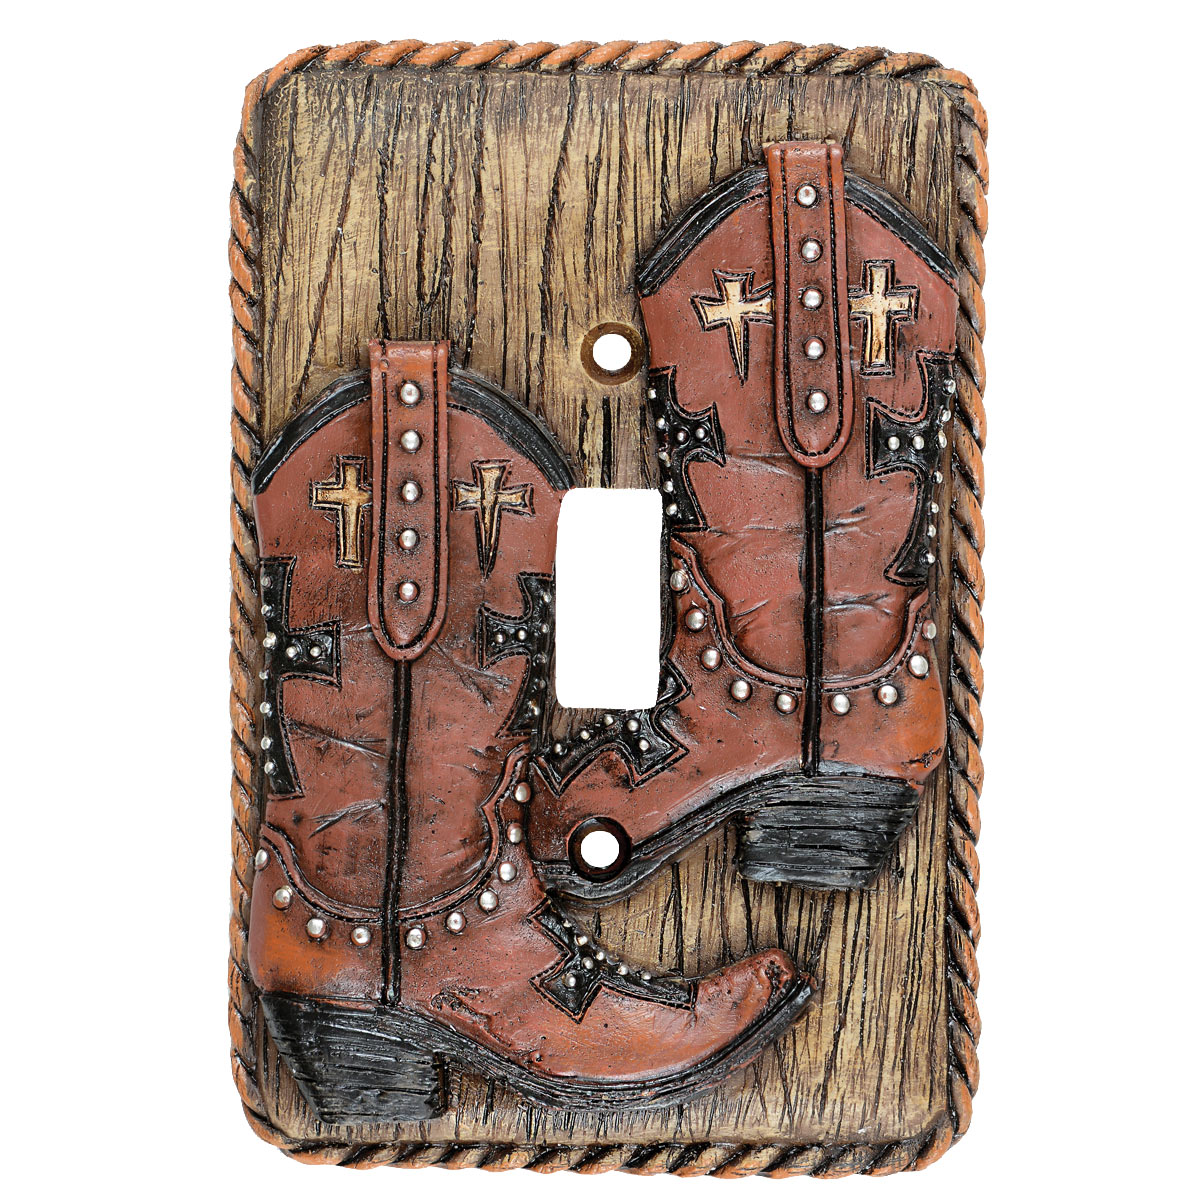 Boots & Rope Single Switch Plate - CLEARANCE